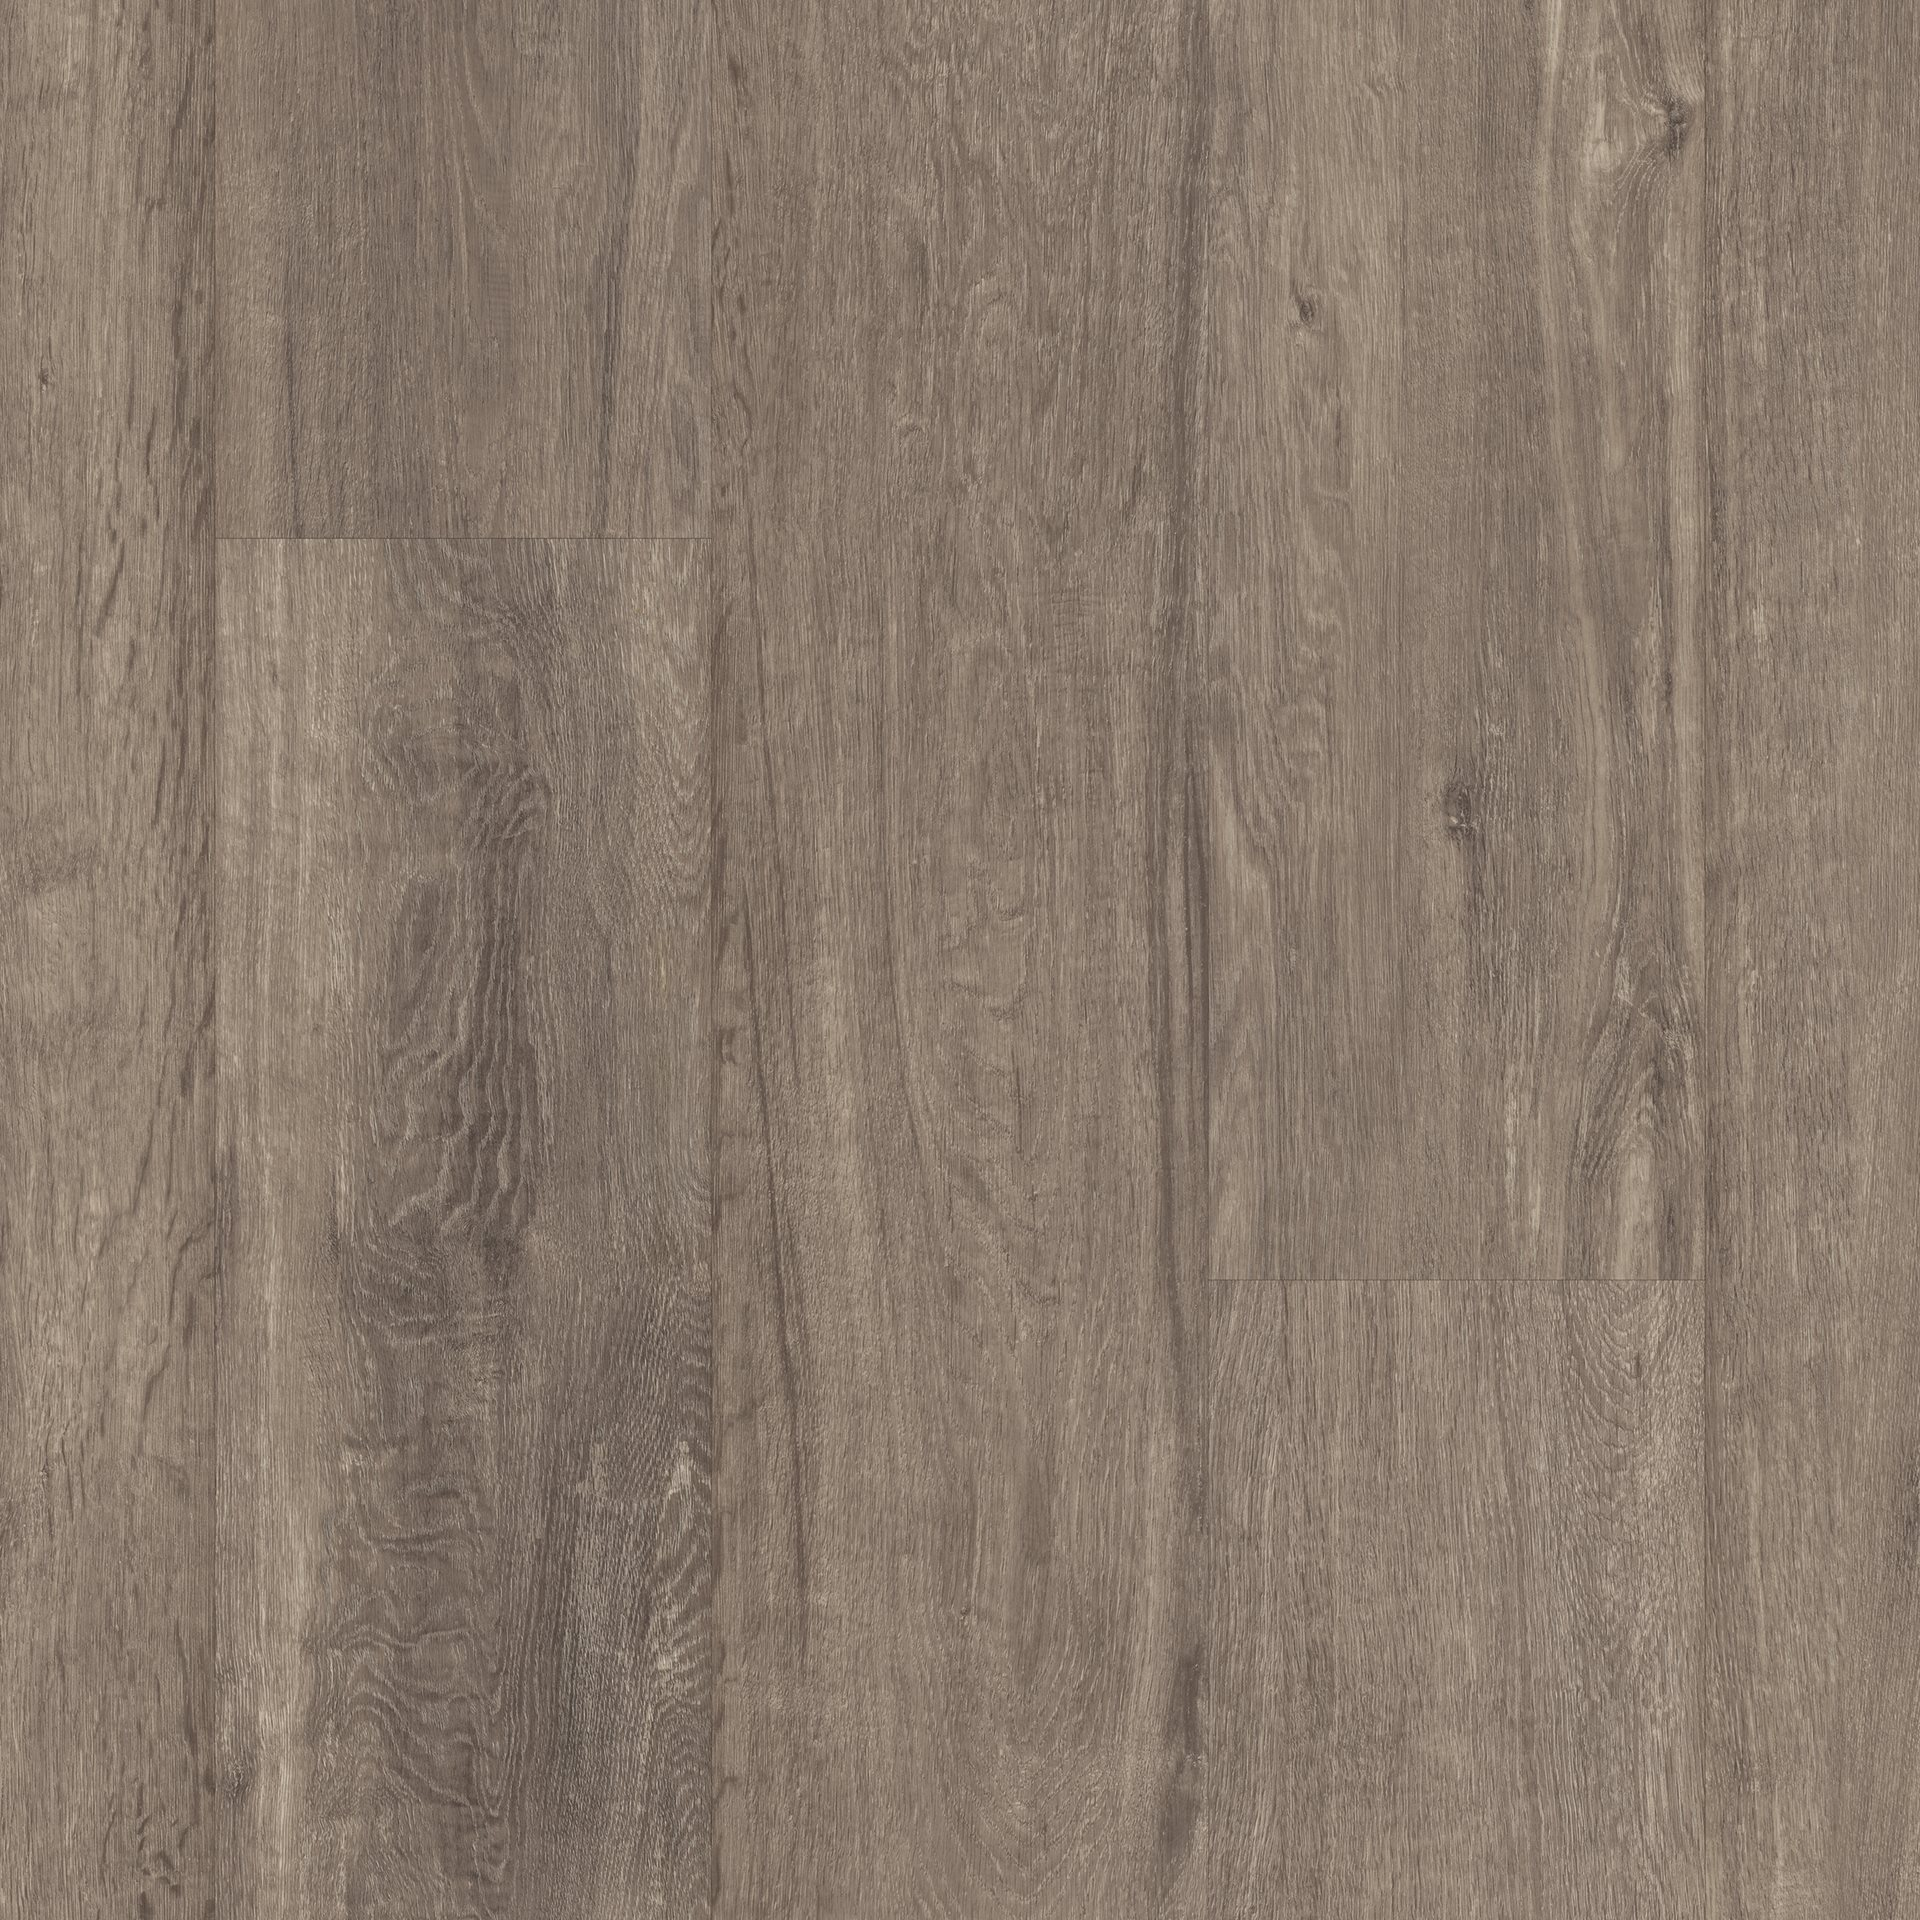 Karndean Looselay Longboard Twilight Oak Vinyl Plank